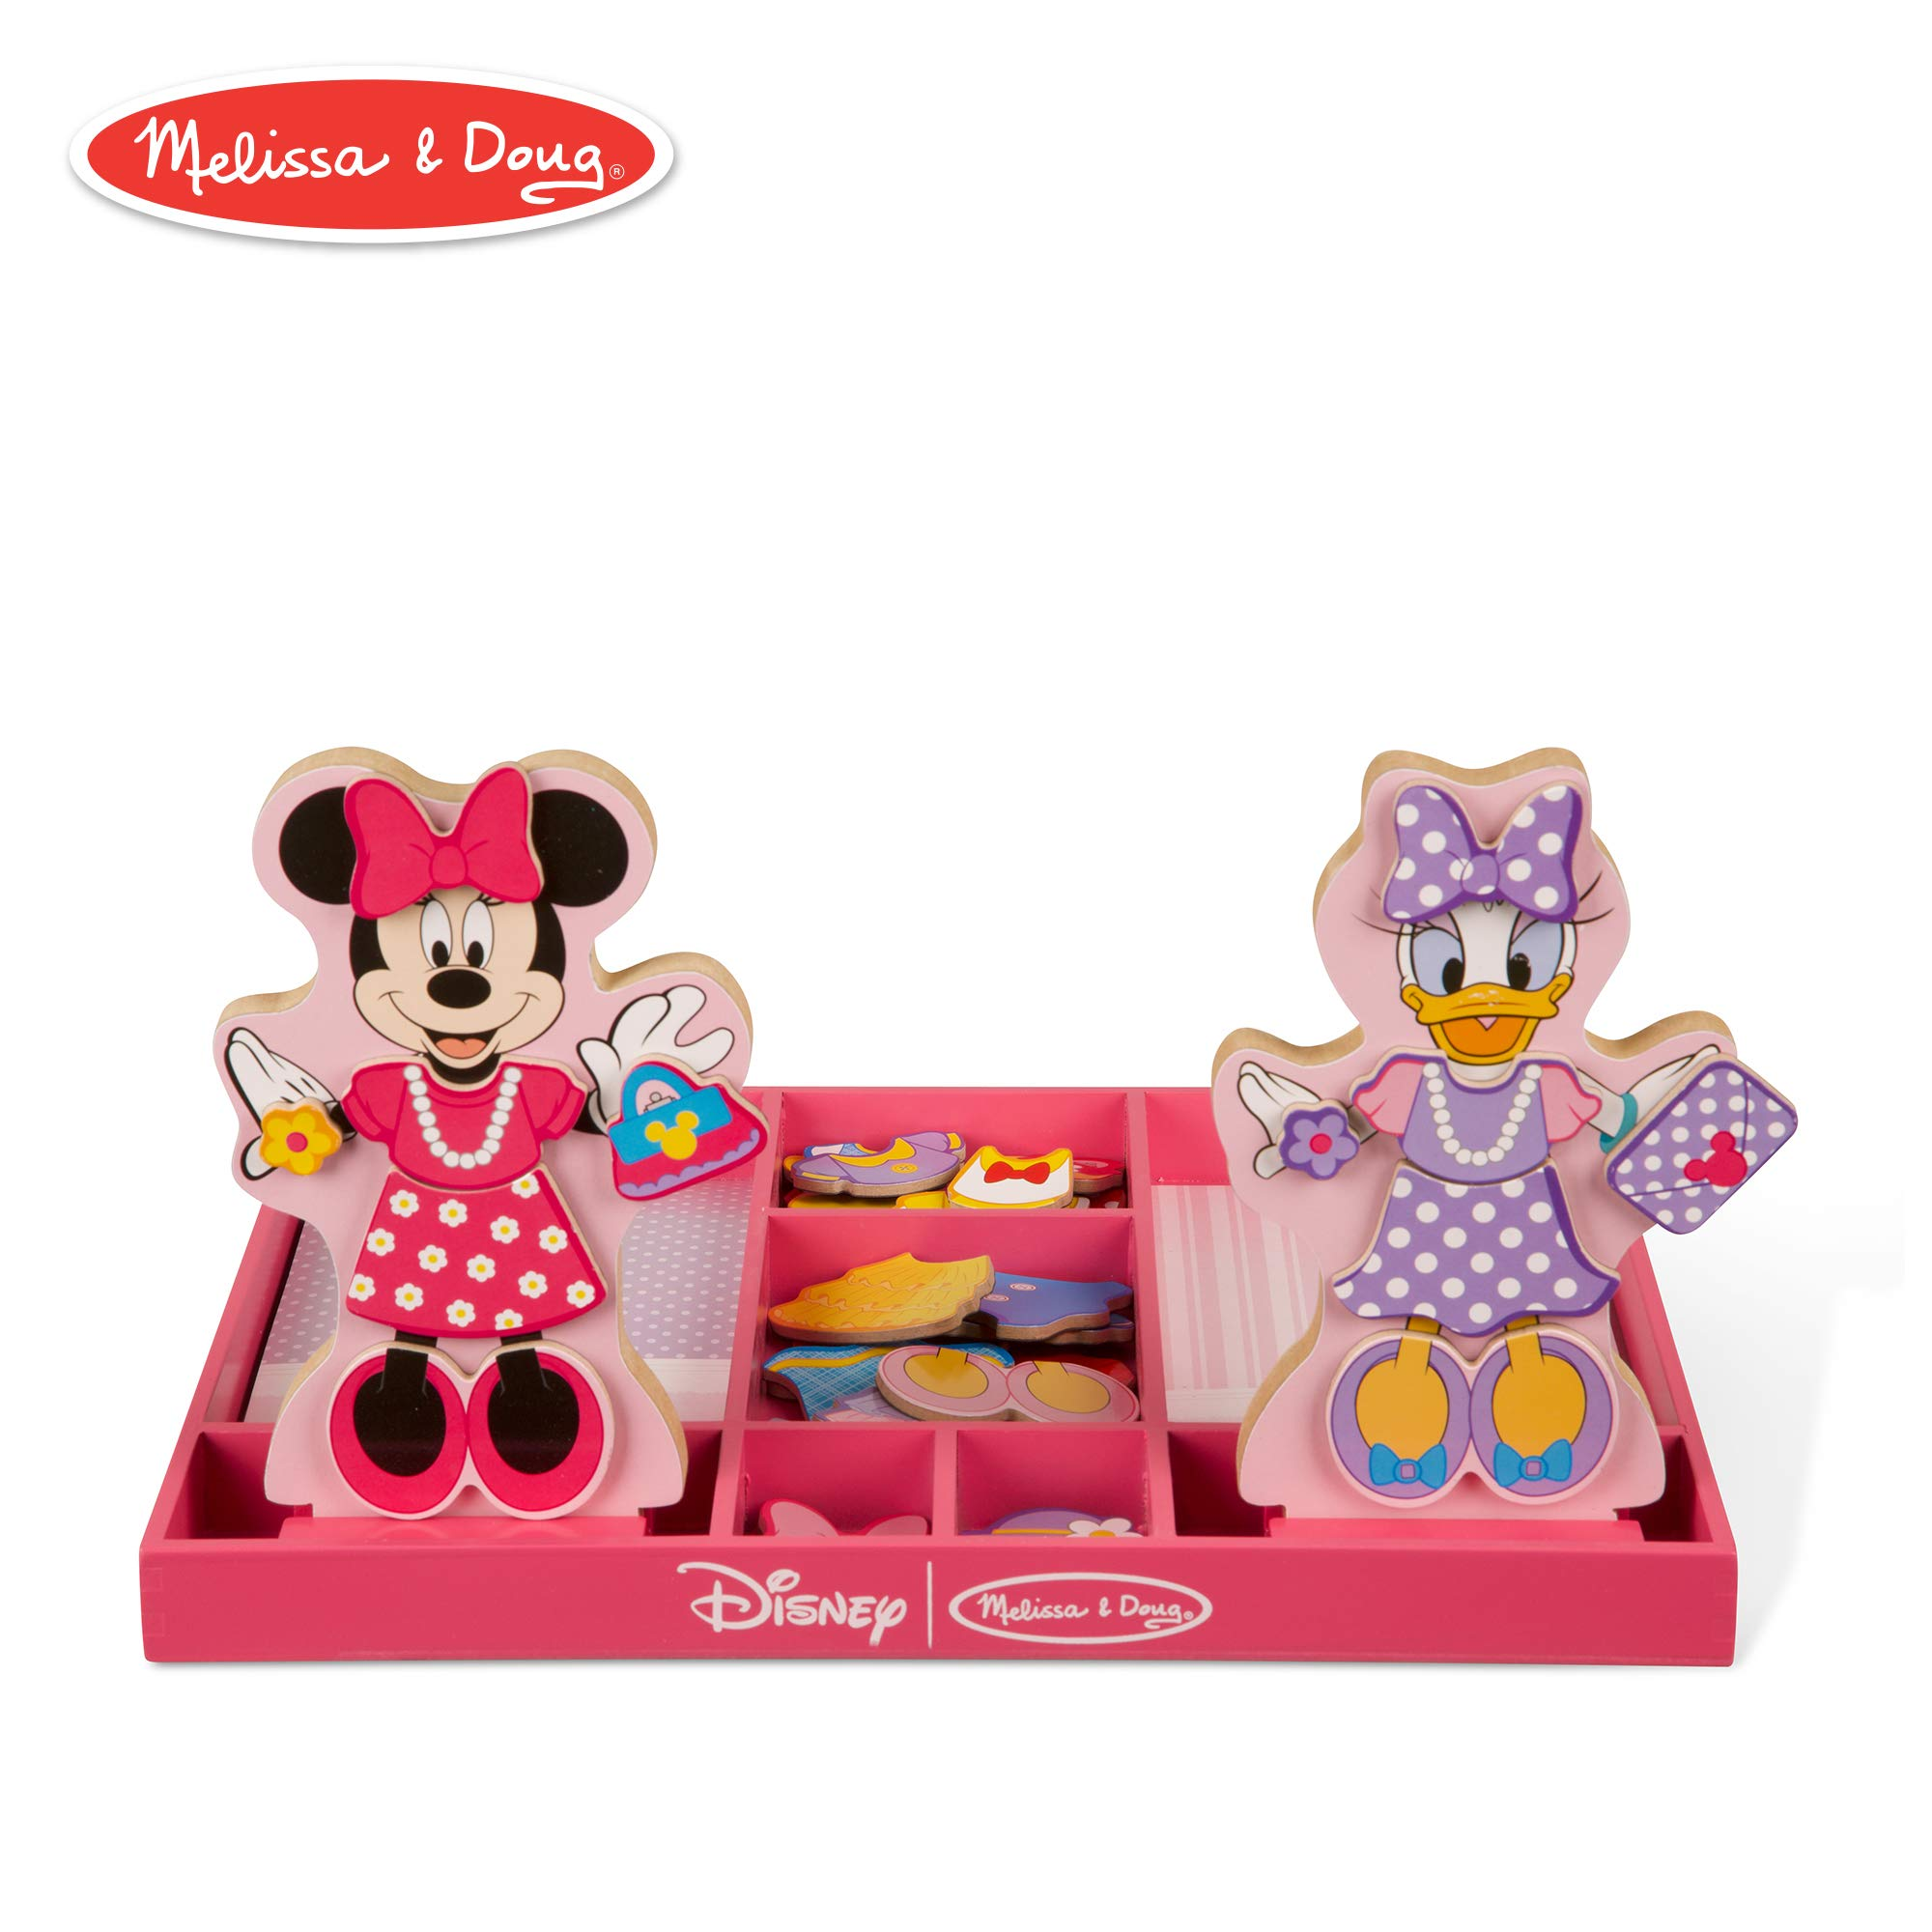 Melissa & Doug Disney Minnie Mouse and Daisy Duck Magnetic Dress-Up Wooden Doll (Pretend Play Set, Display Stands, Great Gift for Girls and Boys – Best for 3, 4, 5 Year Olds and Up)